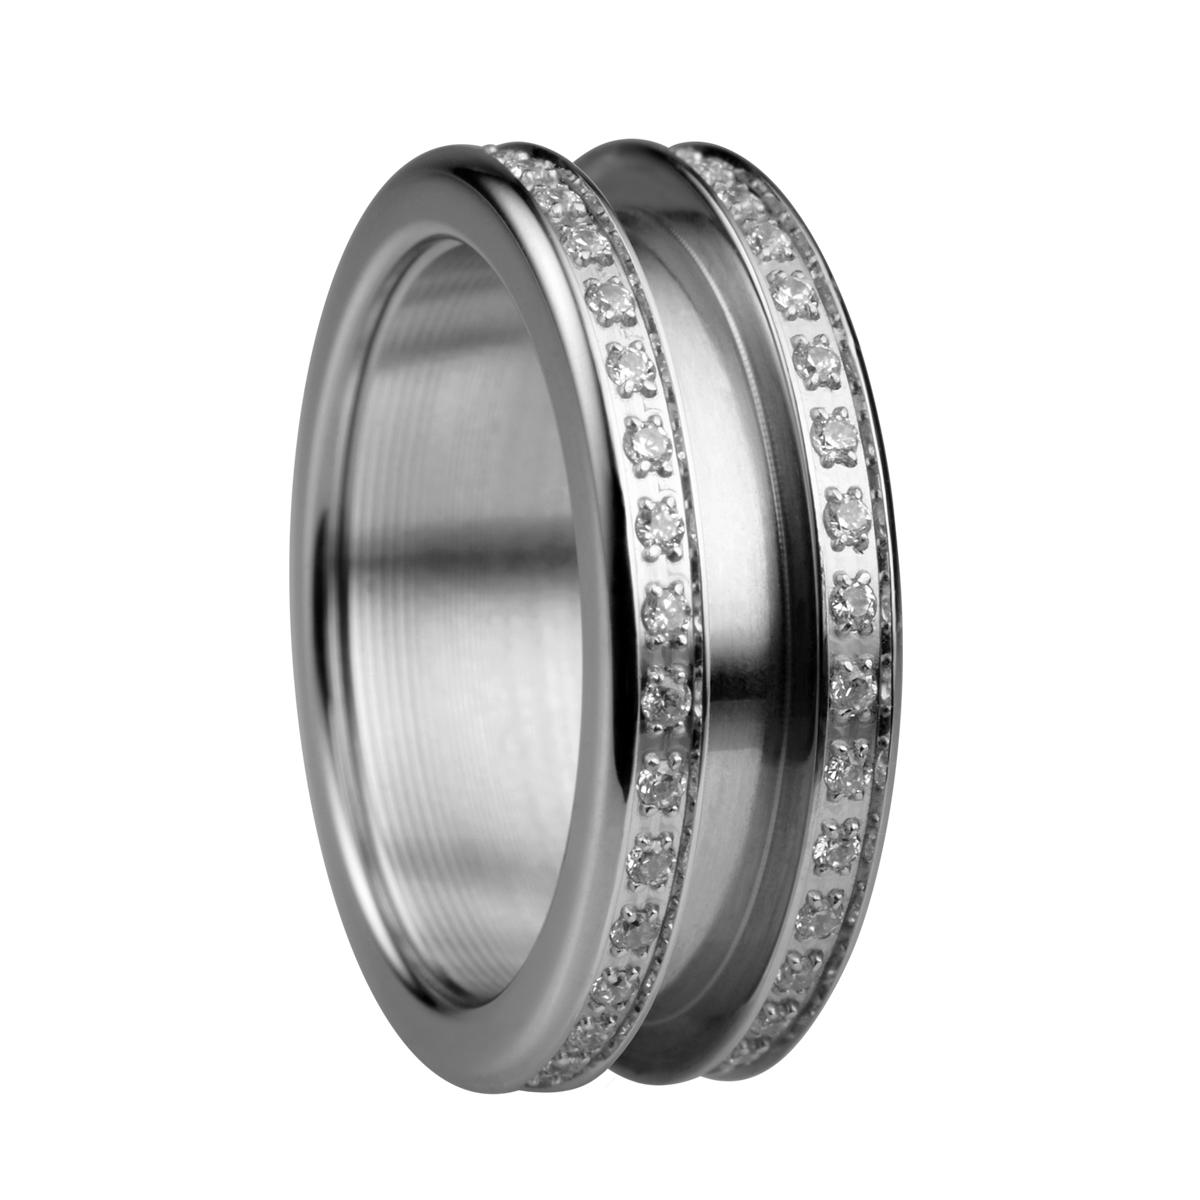 Bering Outer Ring 5231783 1